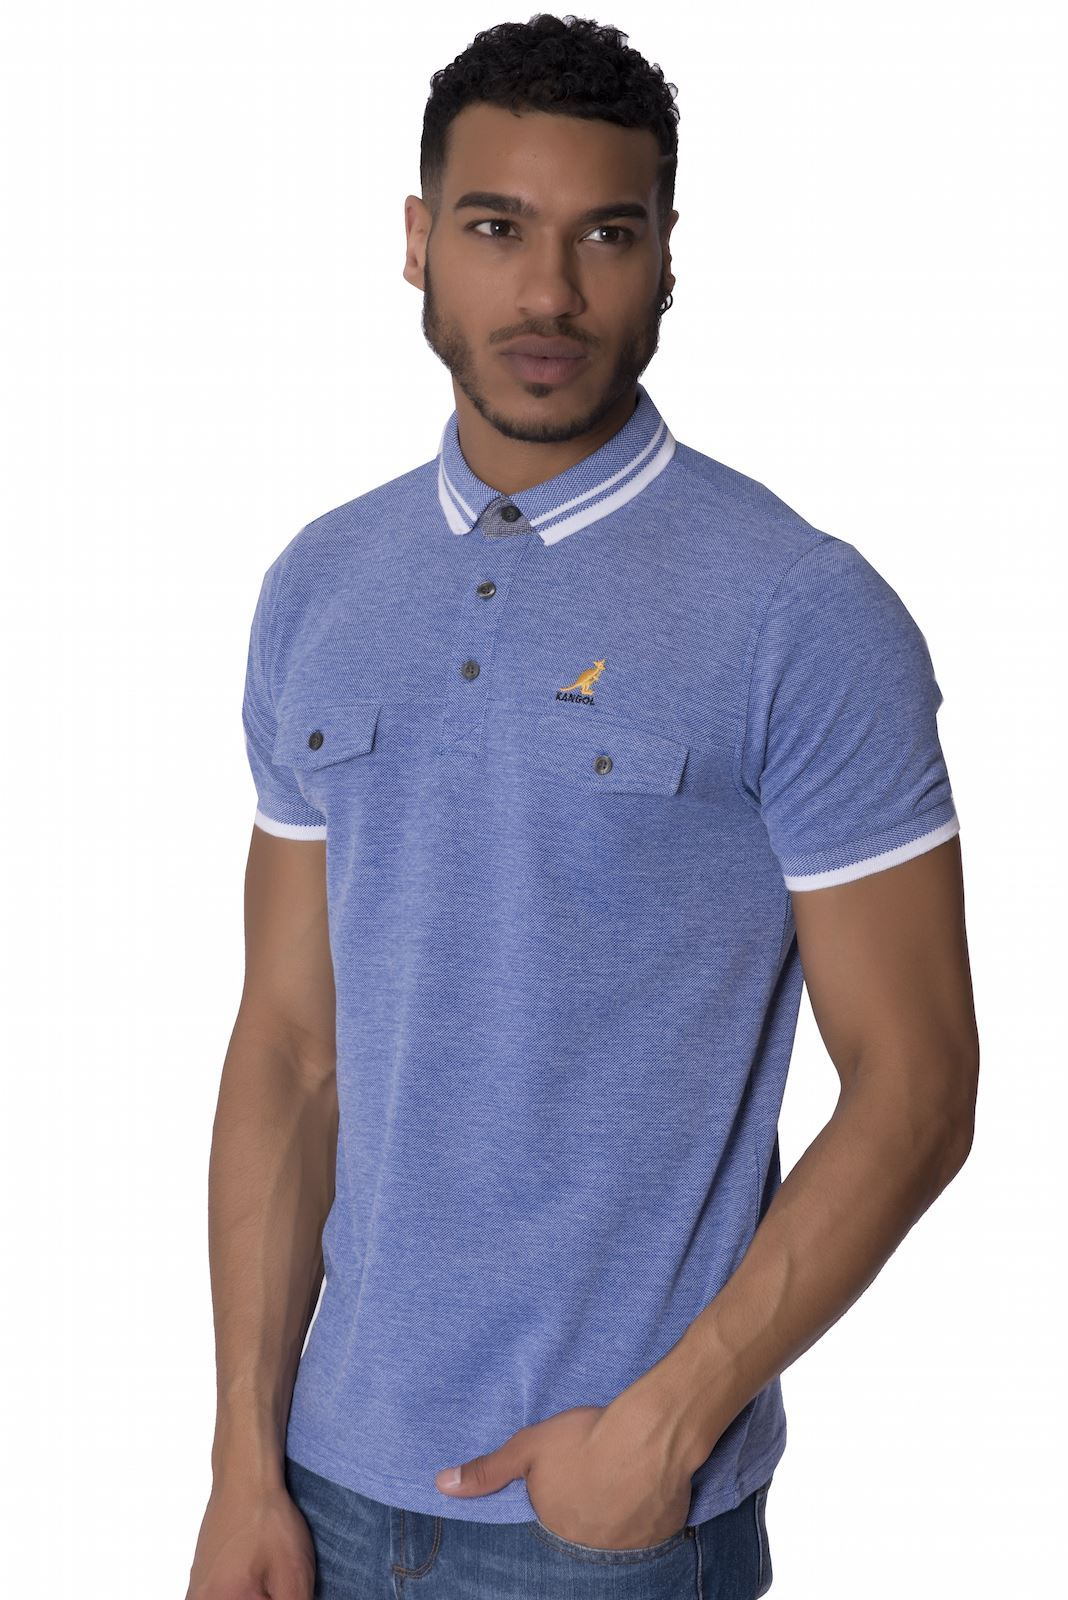 Kangol Mens Branded Polo Shirt Chest Pocket Button Up